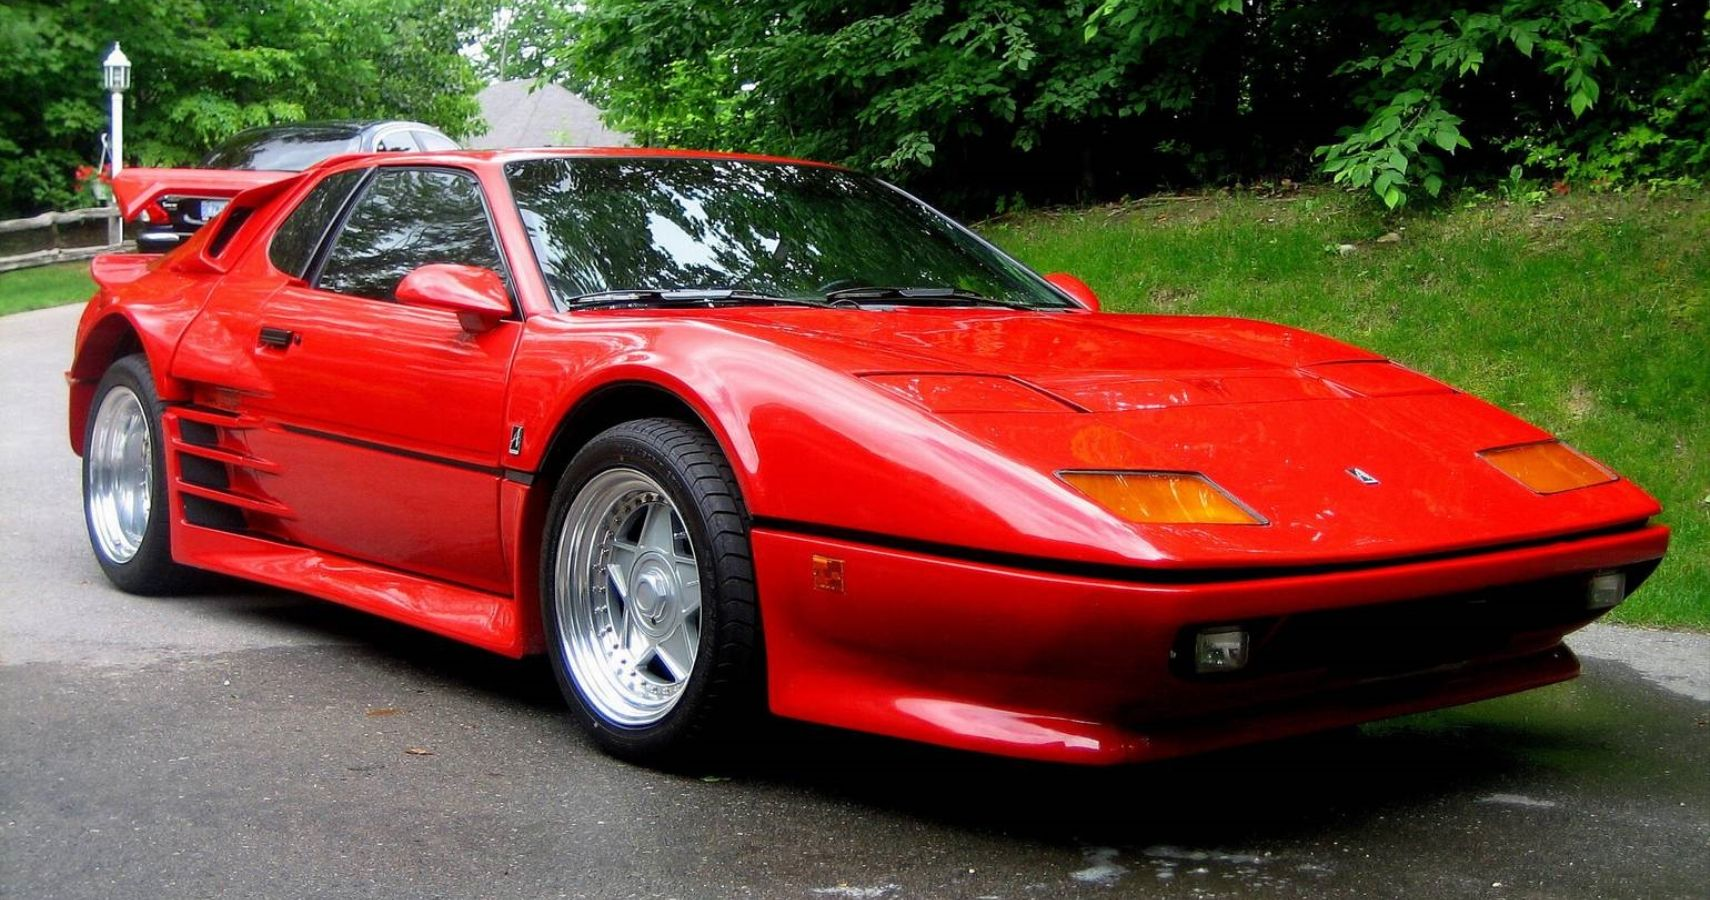 Pontiac Fiero Koenig Inspired Special Is Off To The Auctioneers